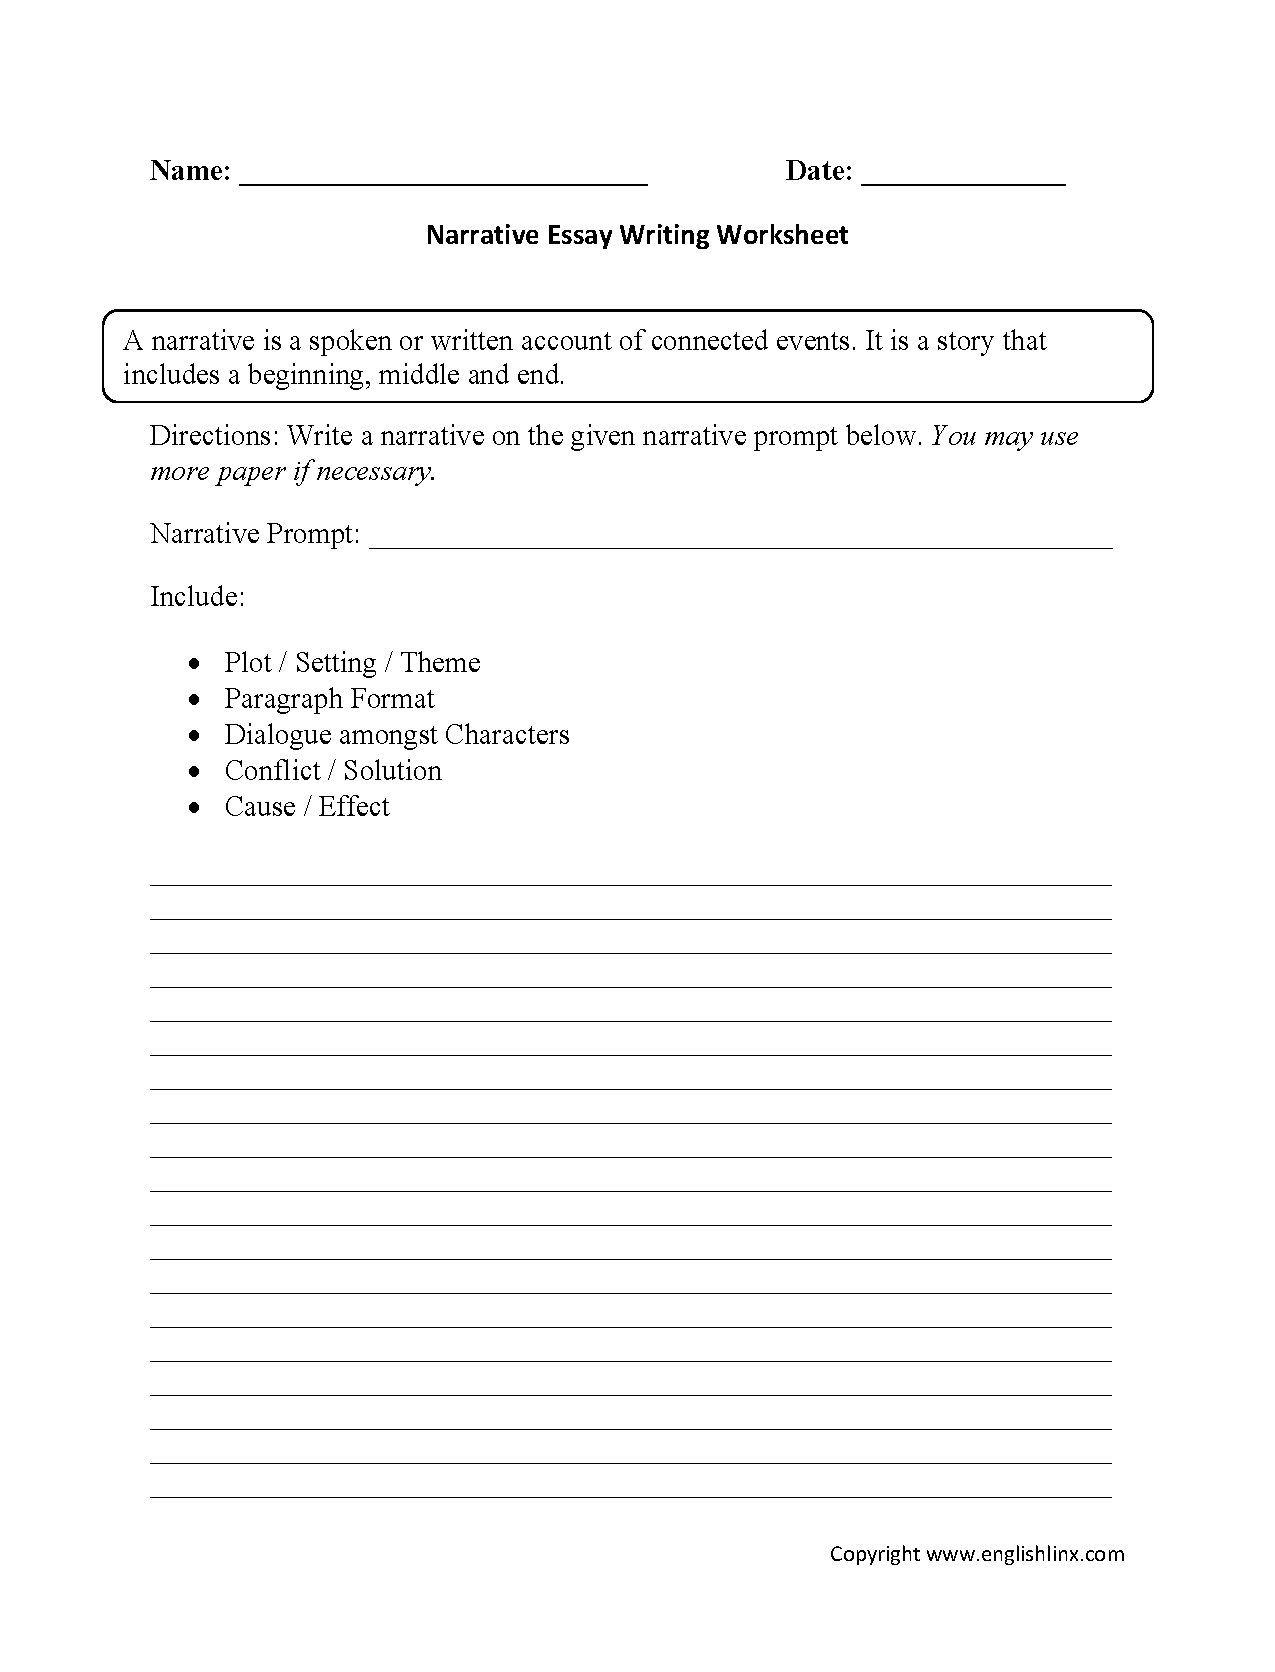 High School Essay Writing Worksheets